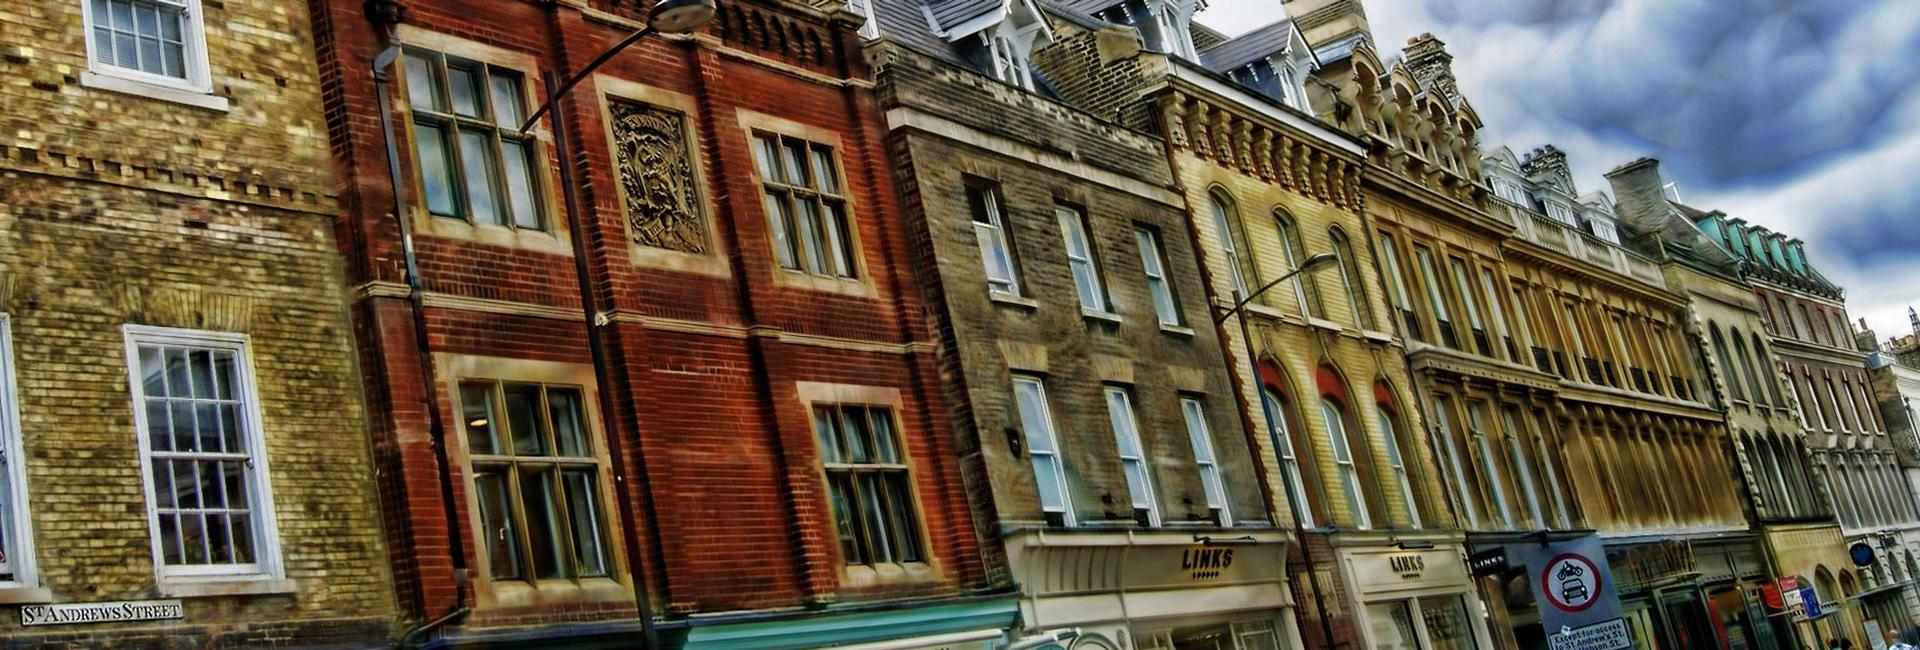 Property Activity Index shows that the UK housing market continued its slow but steady recovery in 2012.